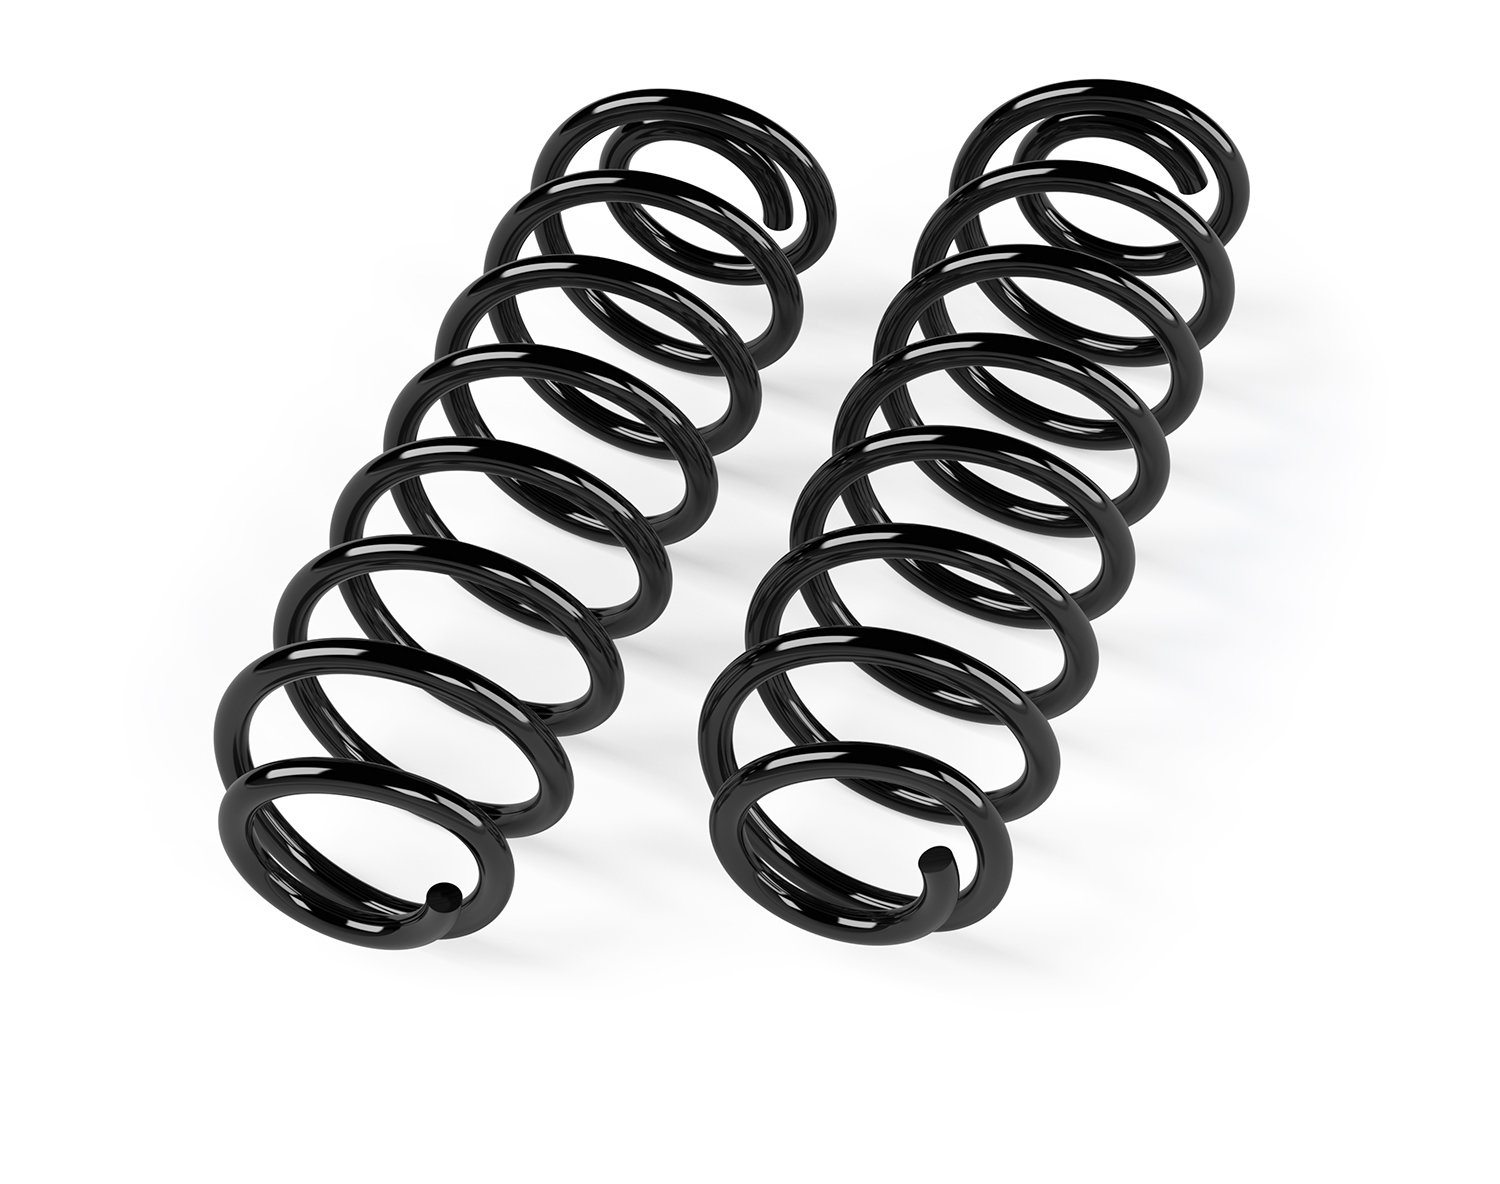 Teraflex Lifted Rear Coil Springs For 18 19 Jeep Wrangler